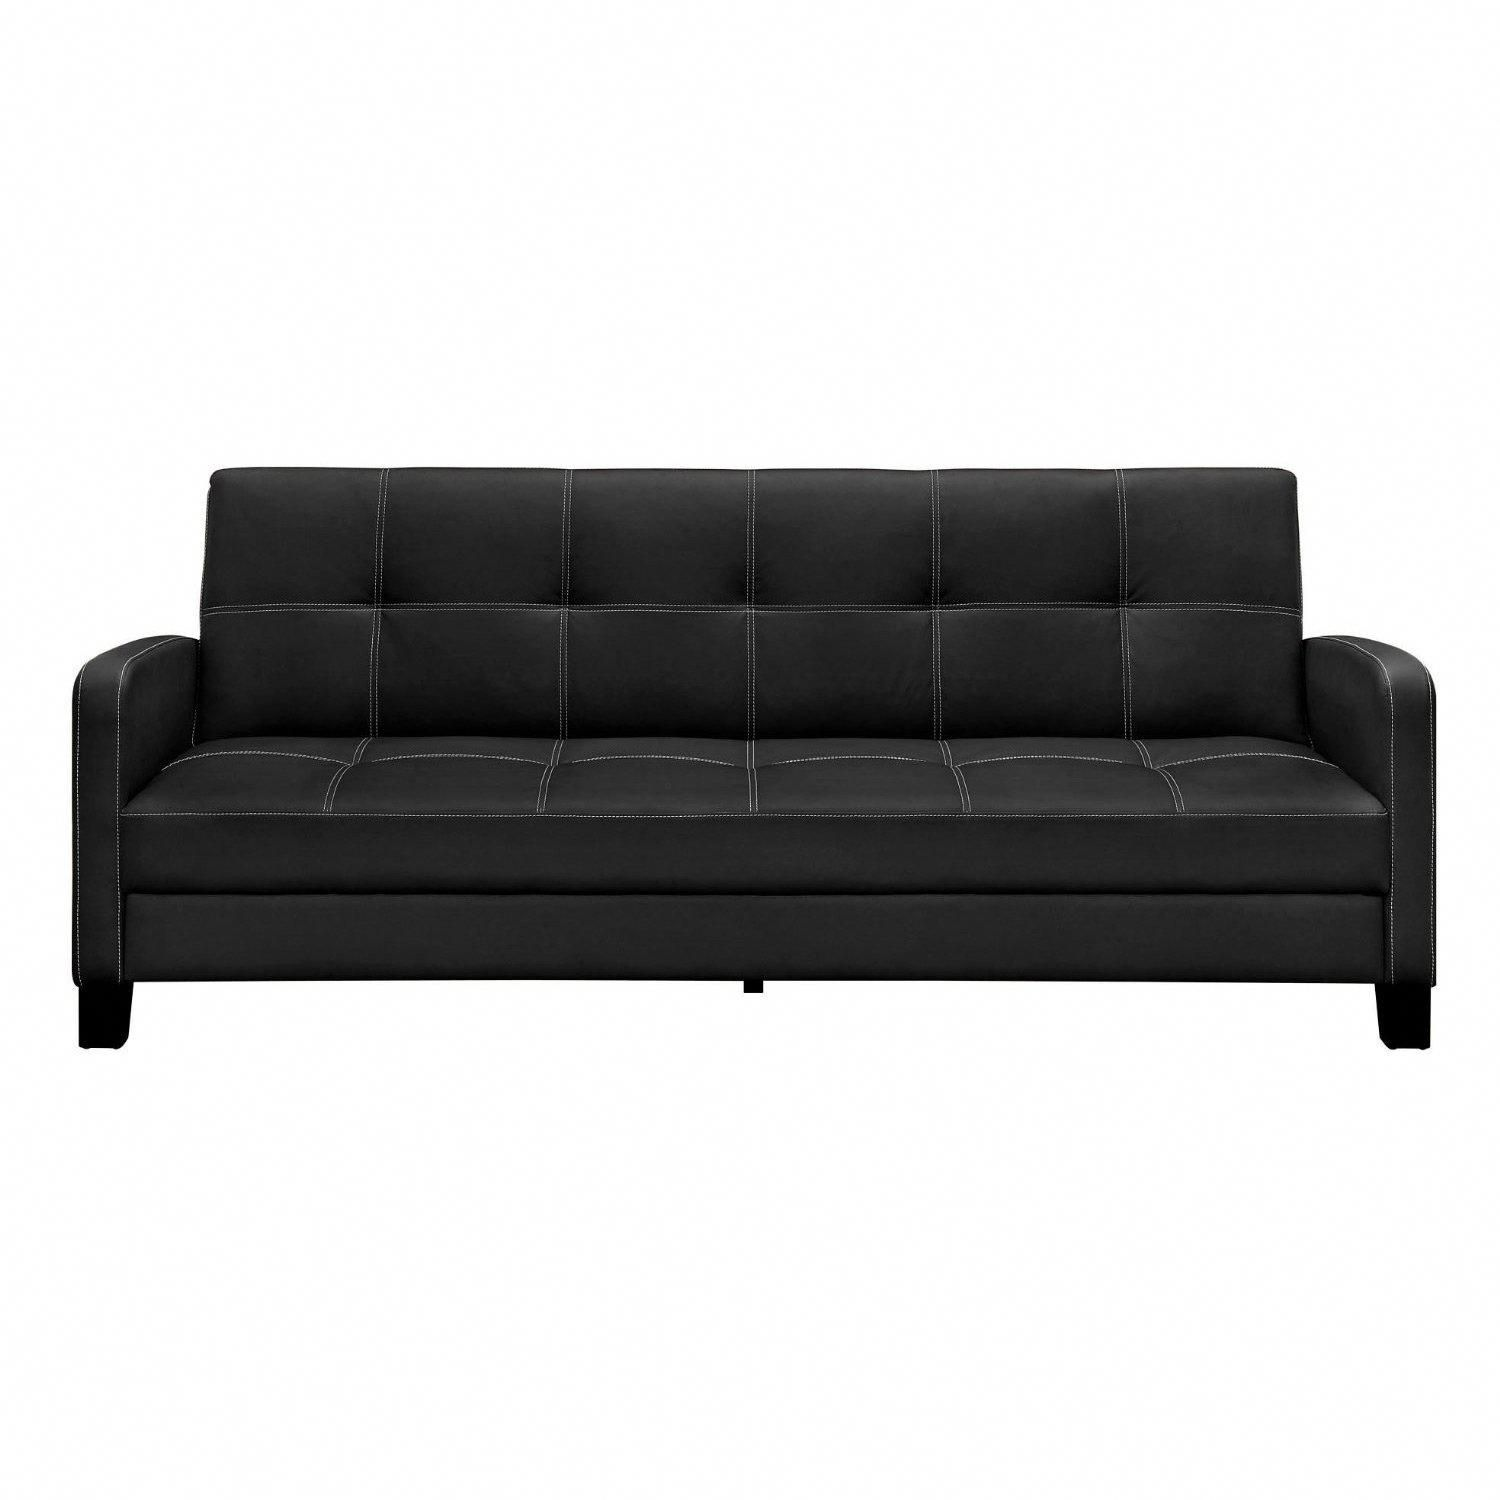 This Classic Black Faux Leather Futon Sofa Sleeper Will Add Style To Your Living Room With Its Rich Faux Leath Faux Leather Sofa Leather Futon Leather Sofa Bed